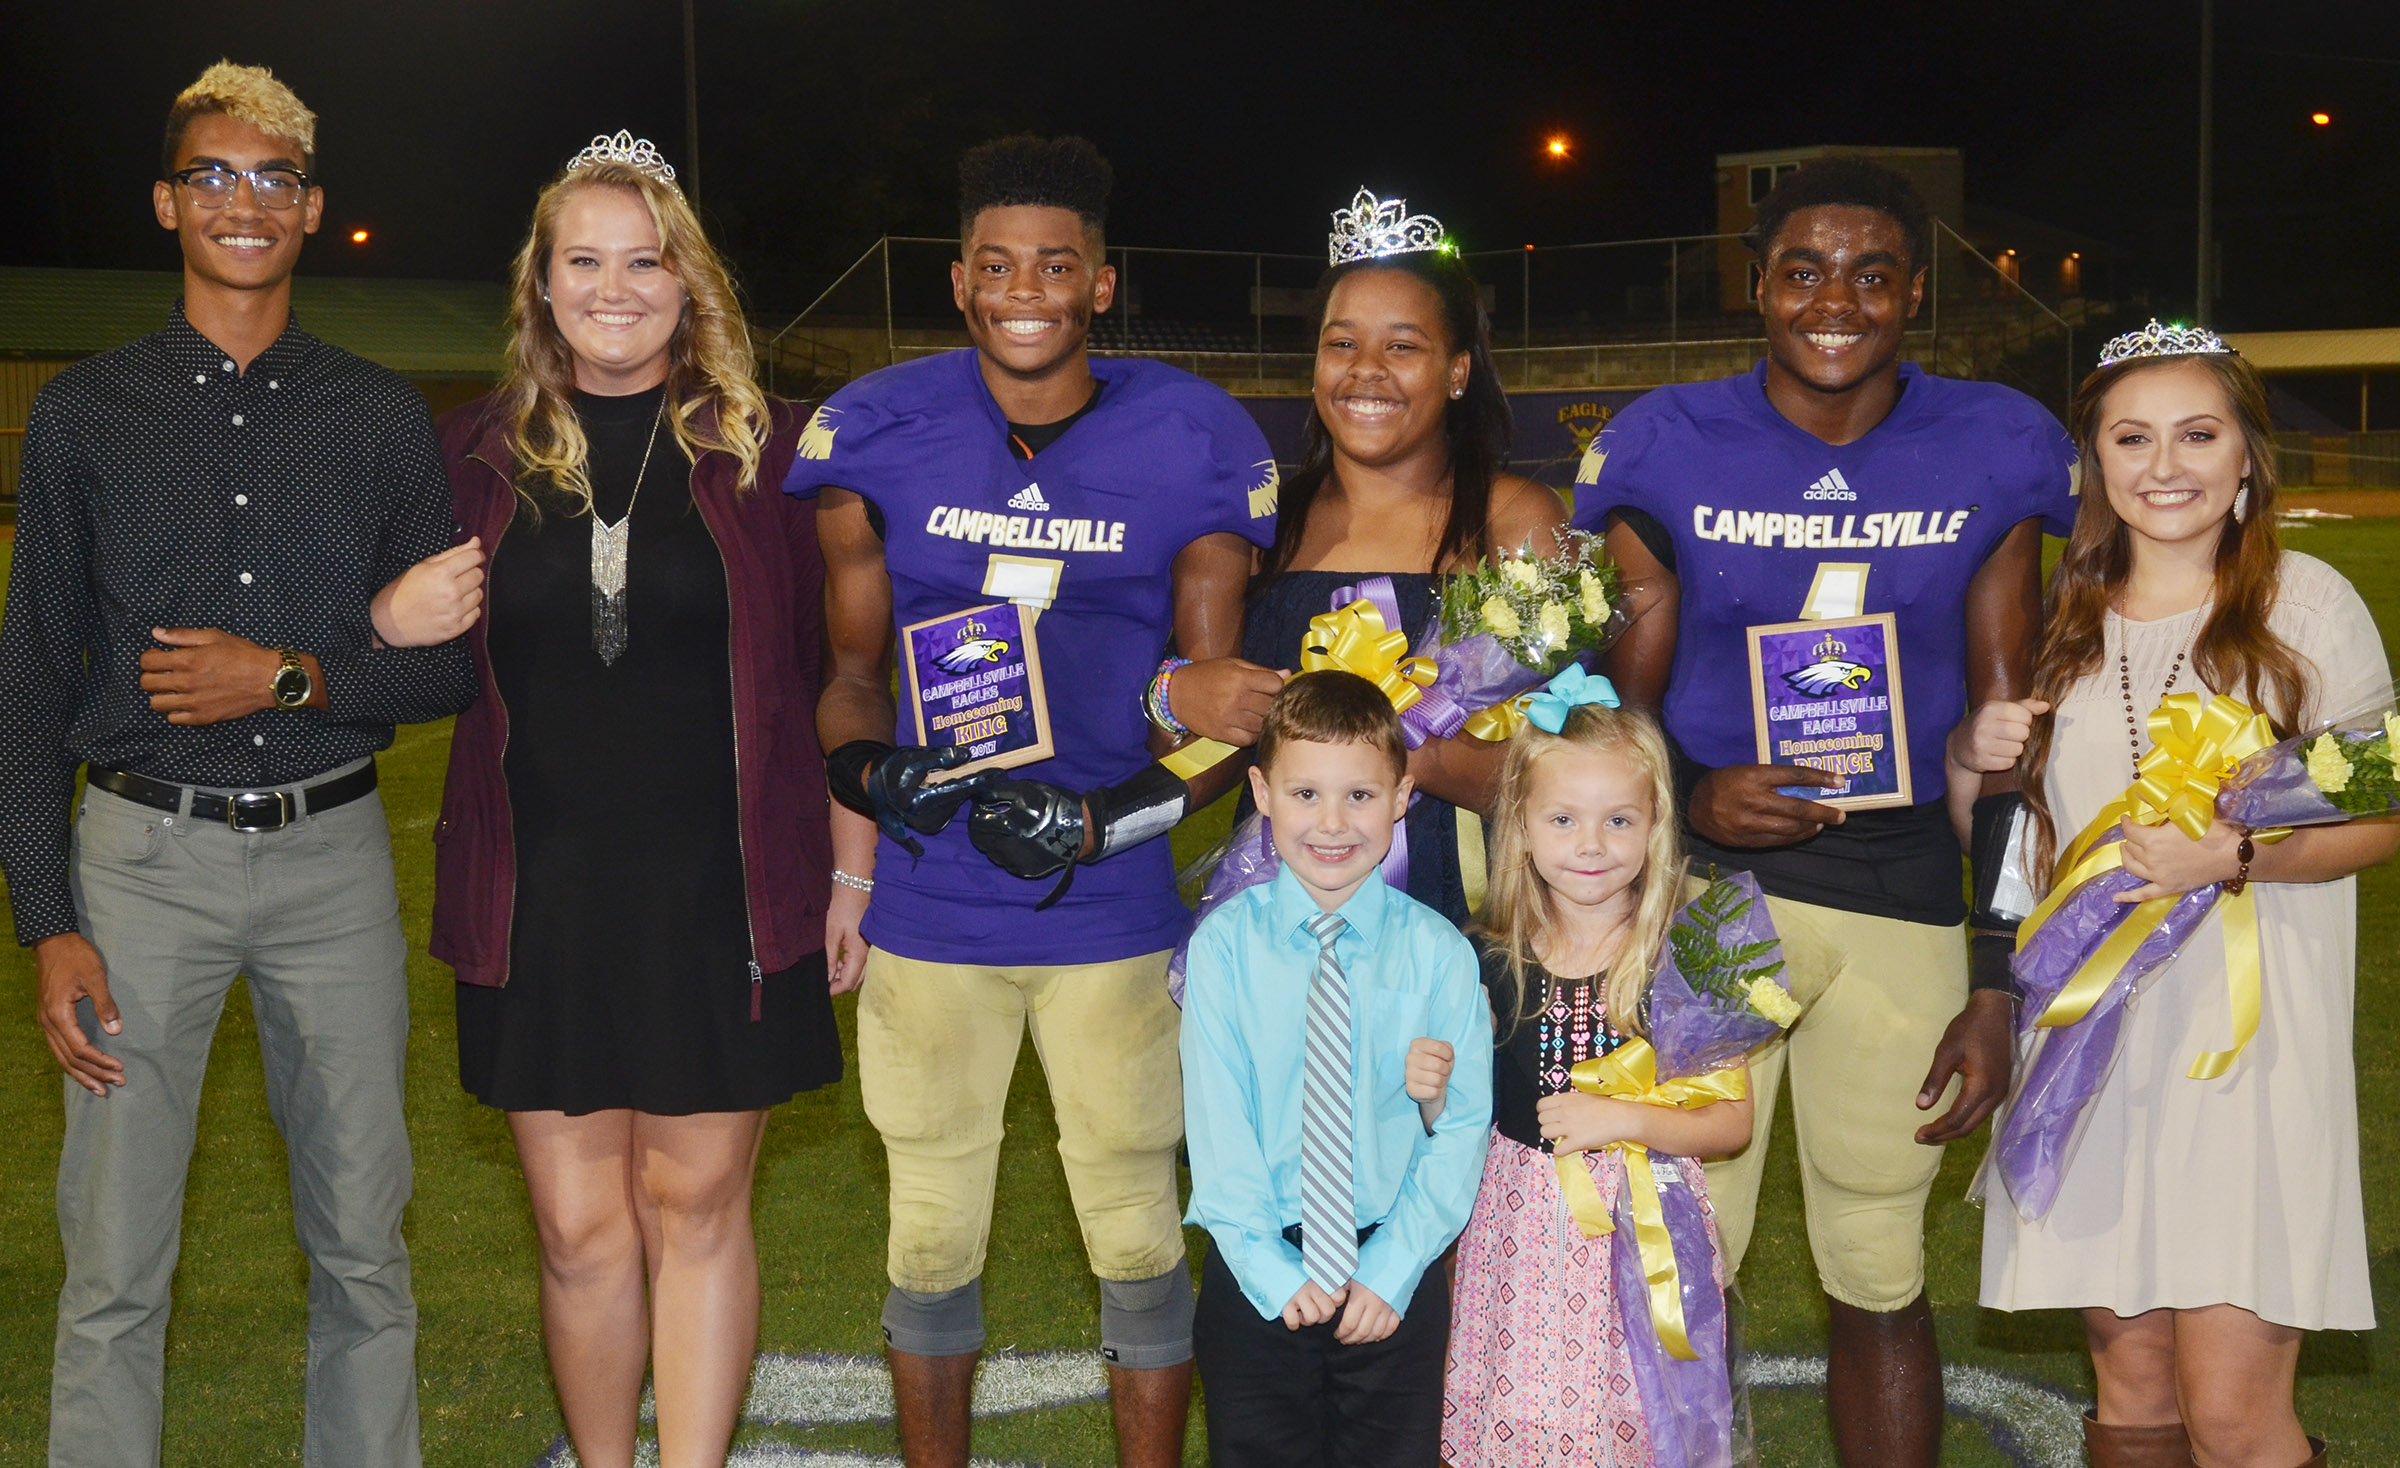 This year's CHS homecoming king and queen are seniors Devonte Cubit and Kayla Young, center. At right are prince and princess Charlie Pettigrew and Reagan Knight, representing the junior class. In front are Campbellsville Elementary School kindergarteners Kyler Wilson and Trinidy Gribbins, who were the crown bearers. And at left are Daniel Silva and Brenna Wethington, who graduated from CHS in May and were last year's football homecoming king and queen.